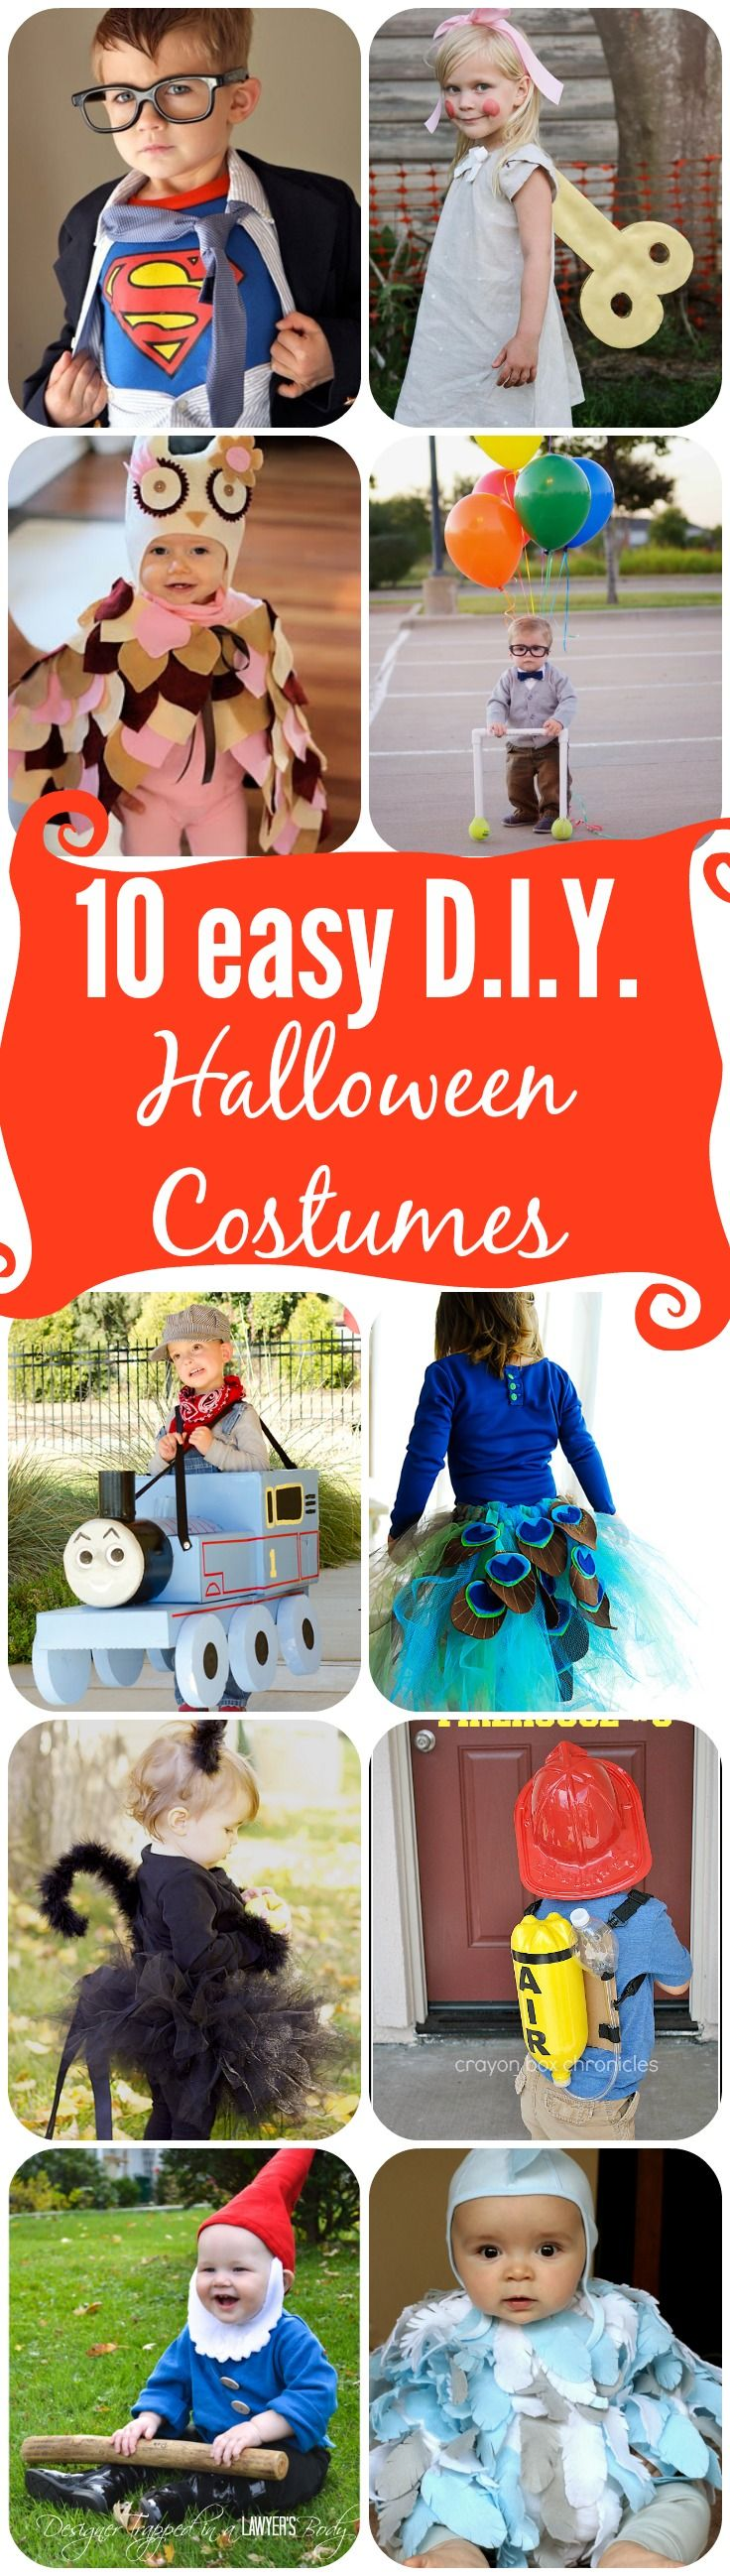 10 adorable DIY Halloween costumes for toddlers!  #diyhalloween #halloweencostumes #diyhalloweencostume